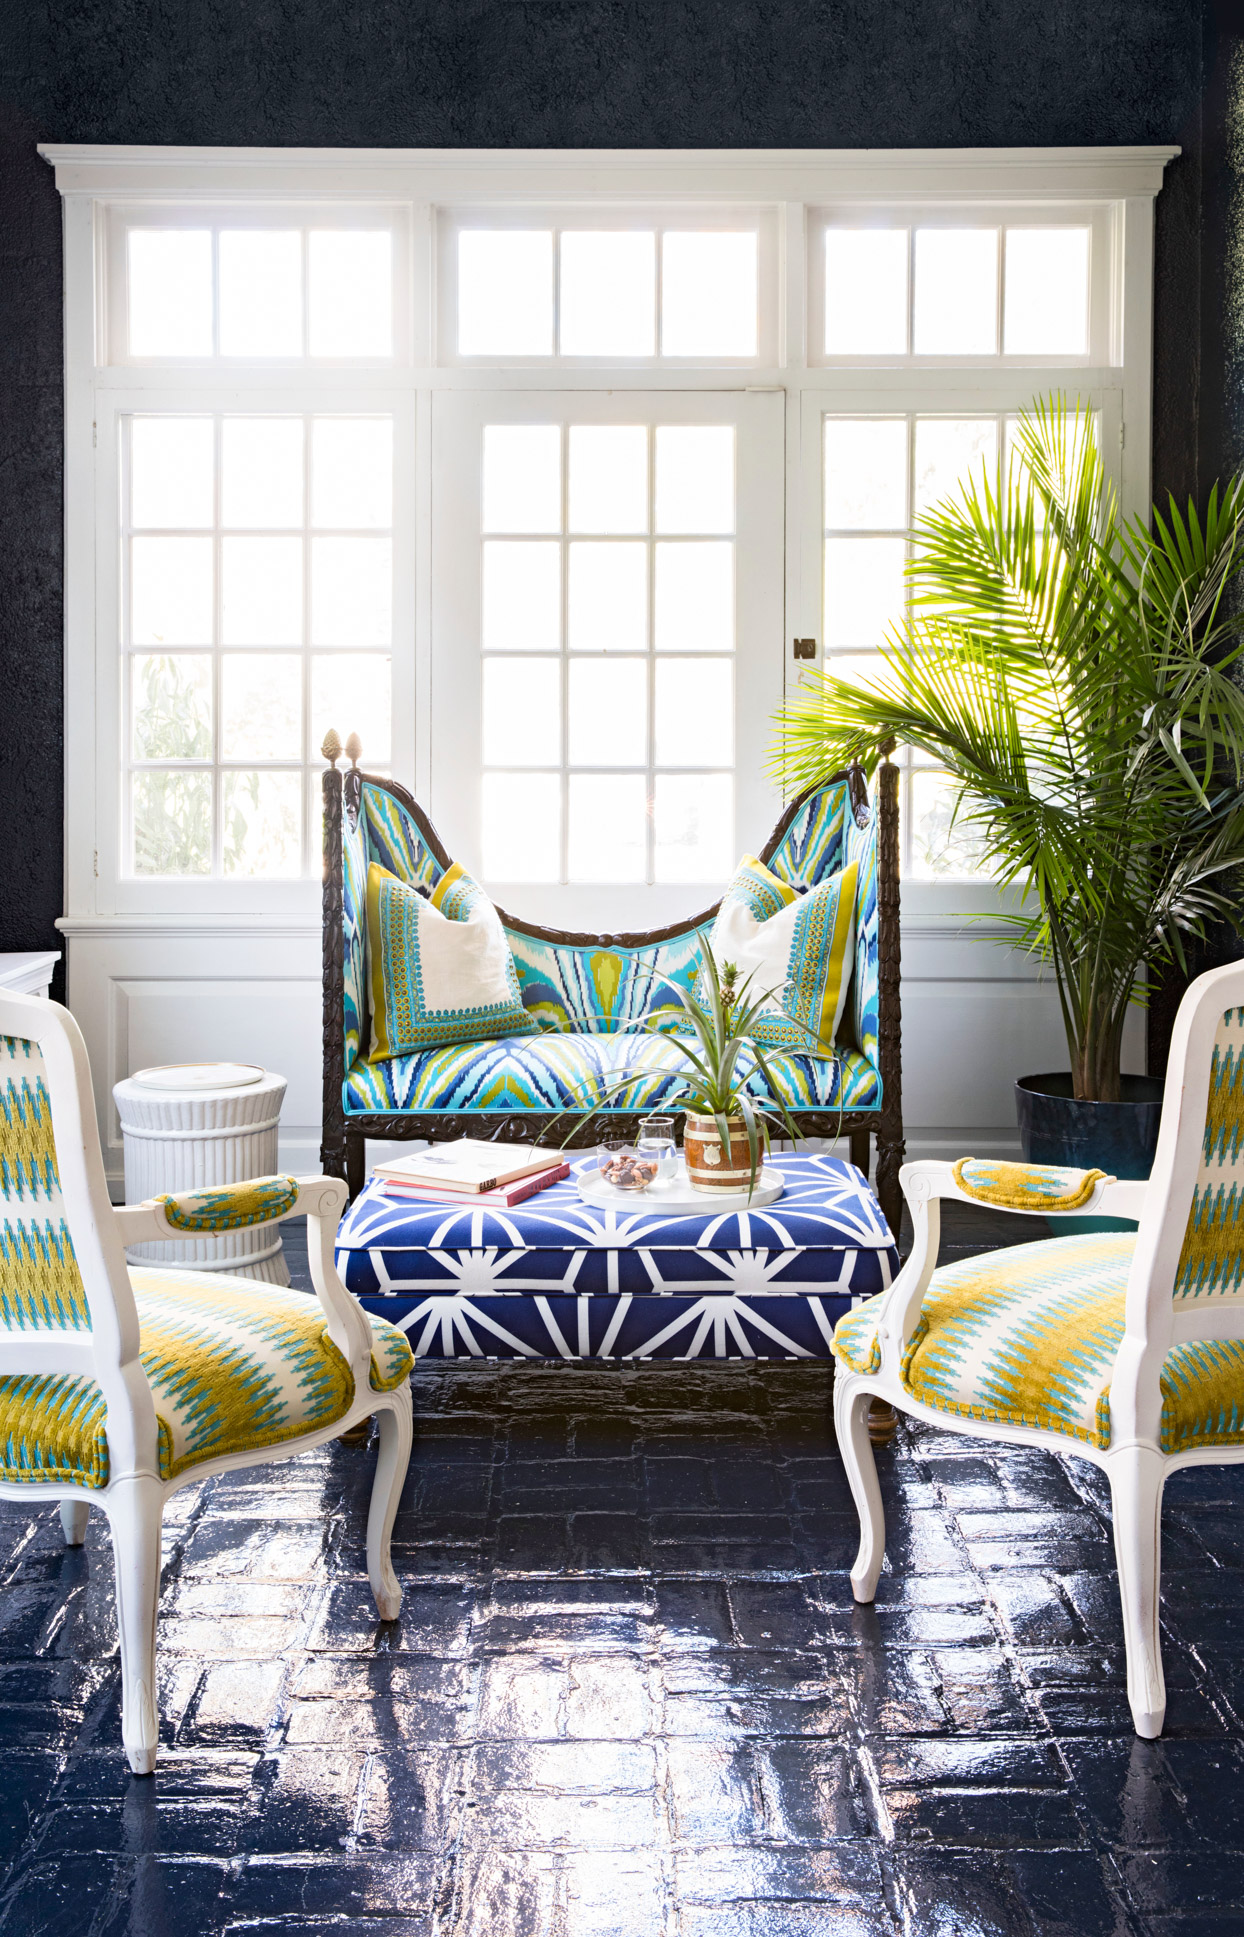 sitting area with colorful patterned chairs